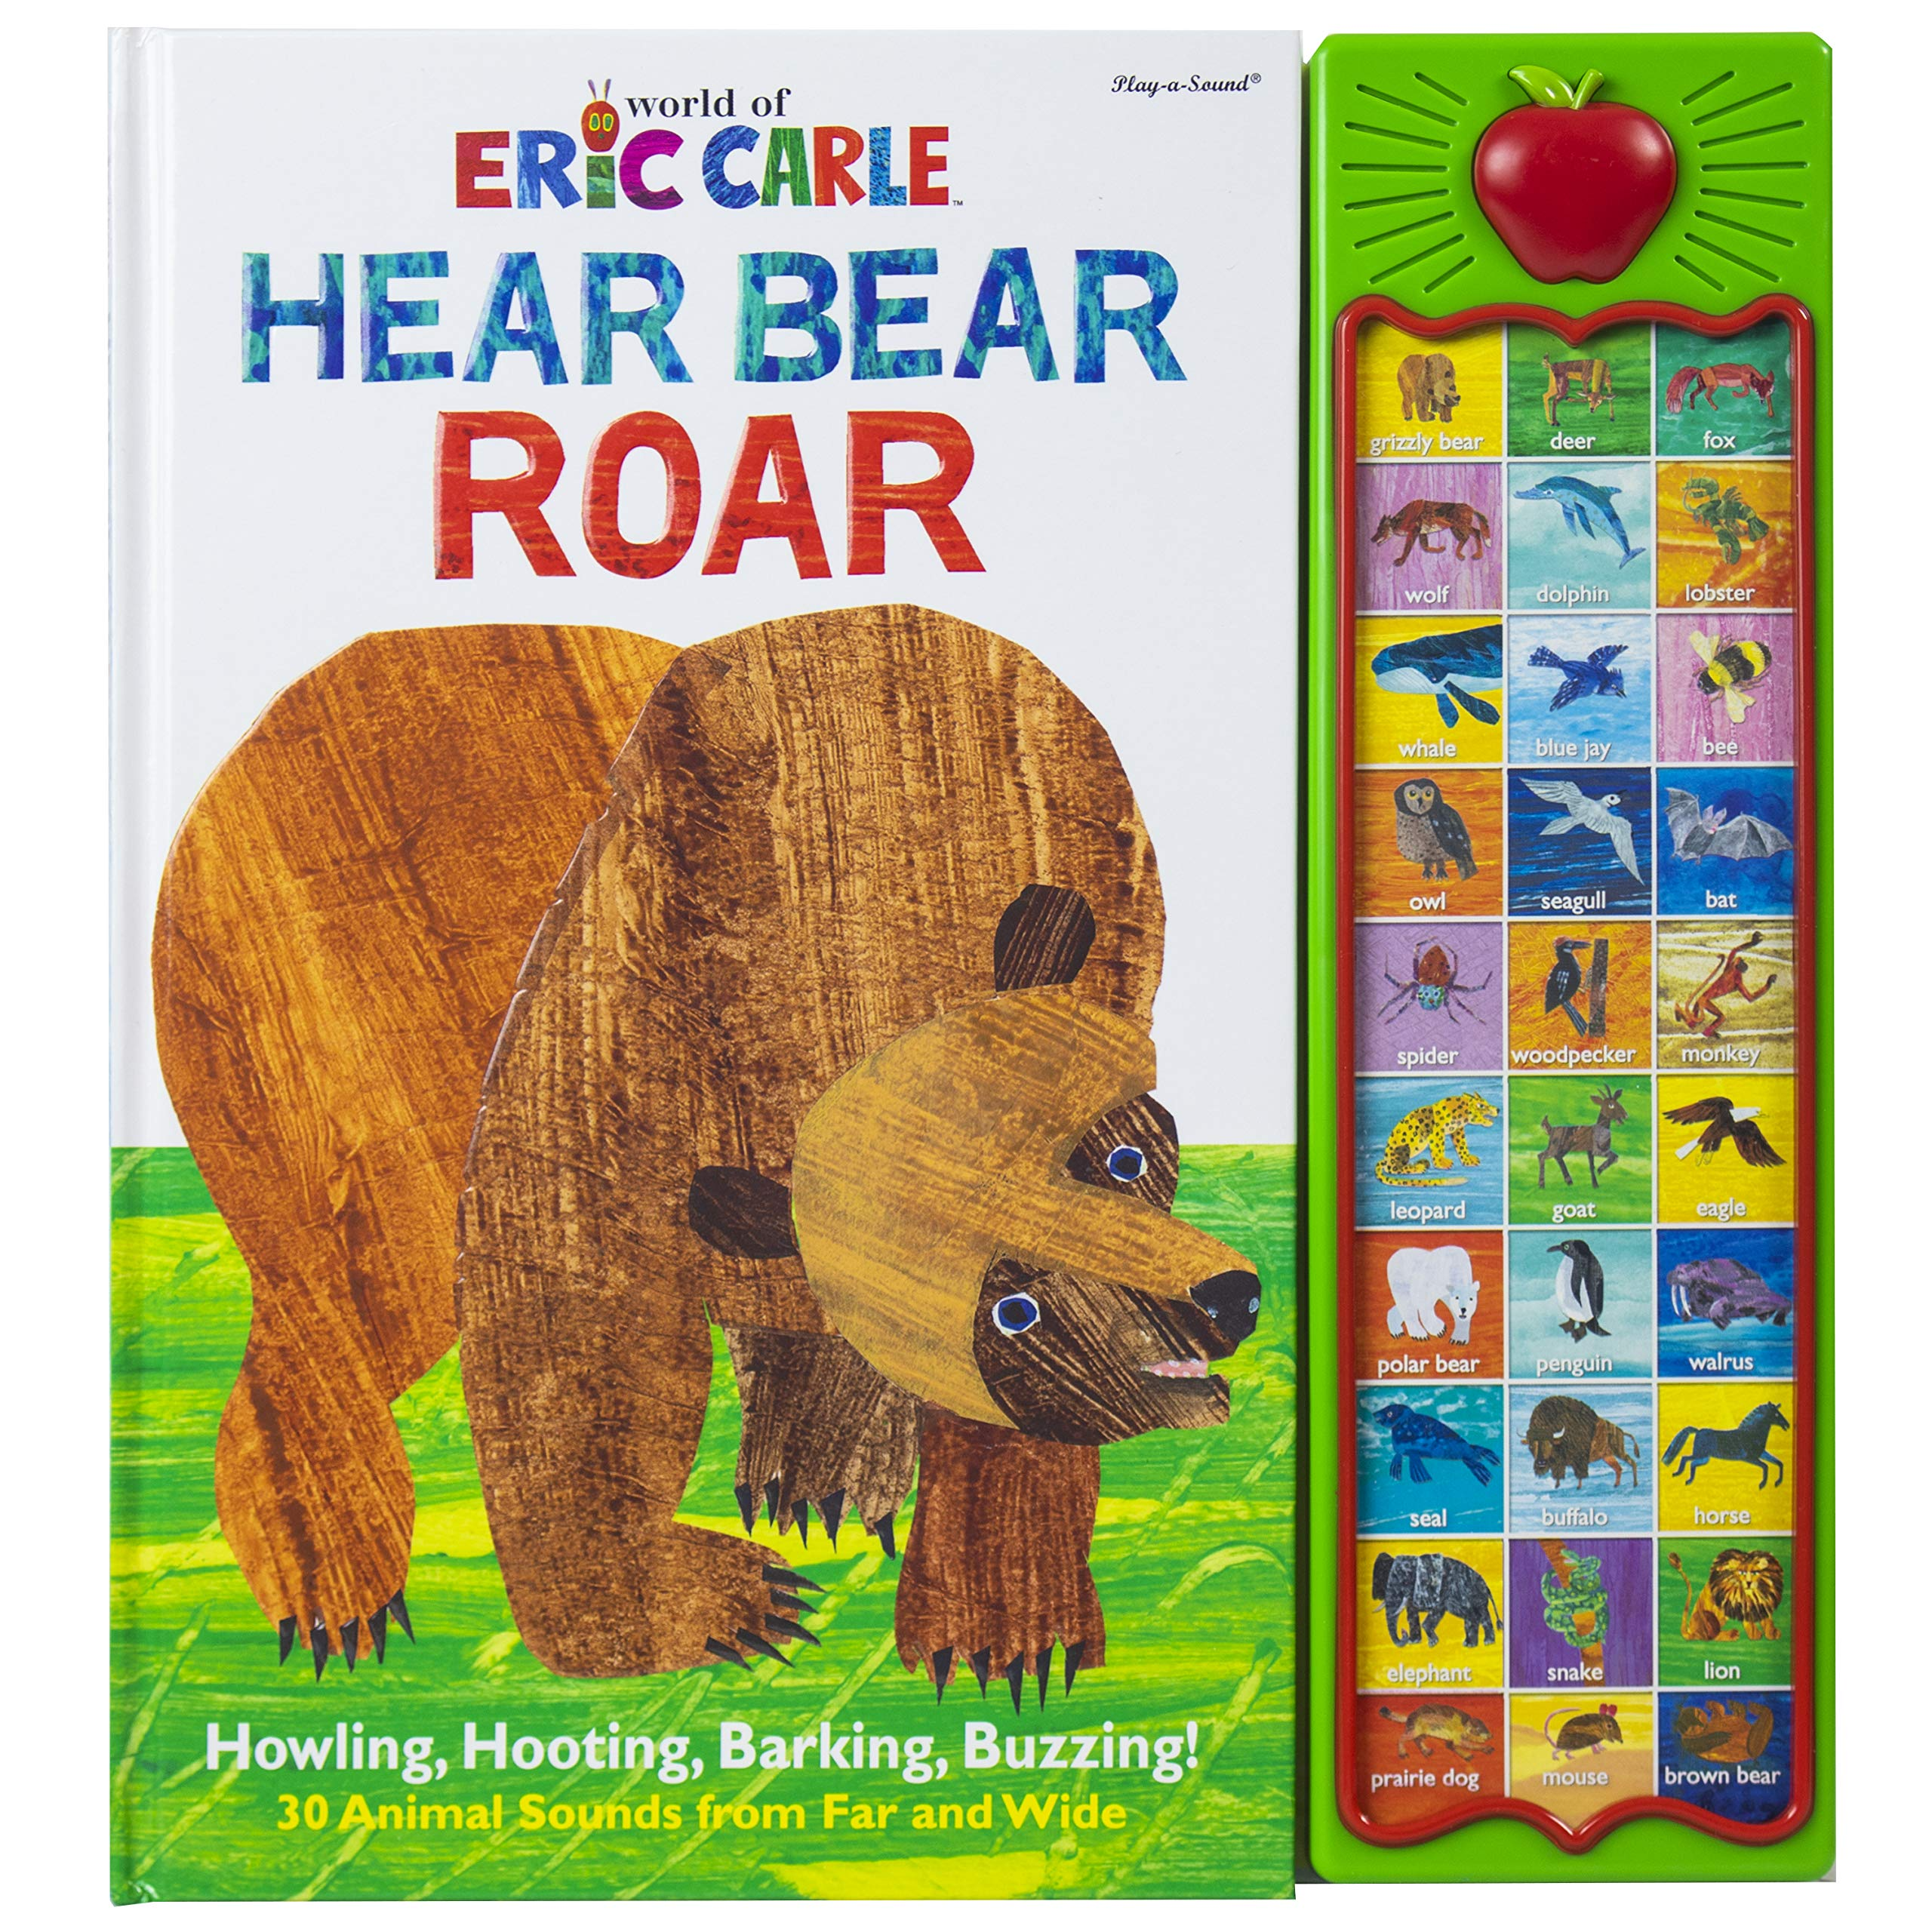 World of Eric Carle, Hear Bear Roar 30 Animal Sound Book – Great Alternative to Toys for Christmas – PI Kids (Play-A…